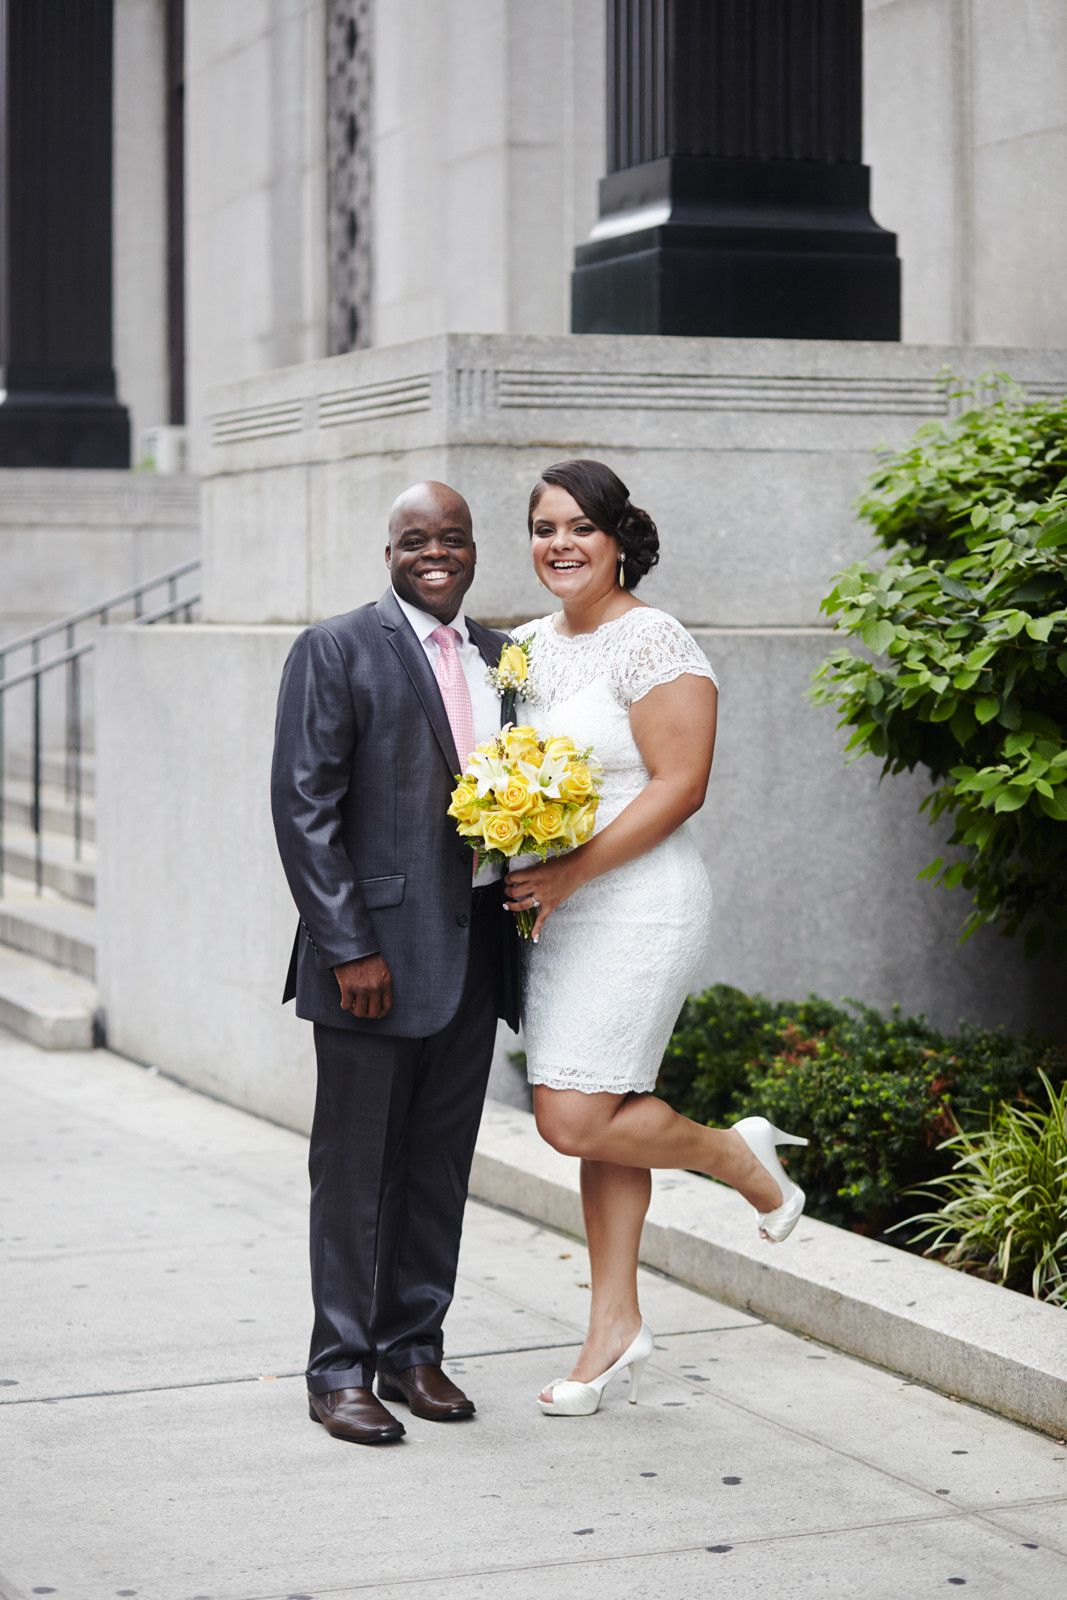 City Hall Wedding Outfits Casual Bridal Gowns City Hall Wedding Dress Courthouse Wedding Dress City Hall Wedding [ 1600 x 1067 Pixel ]